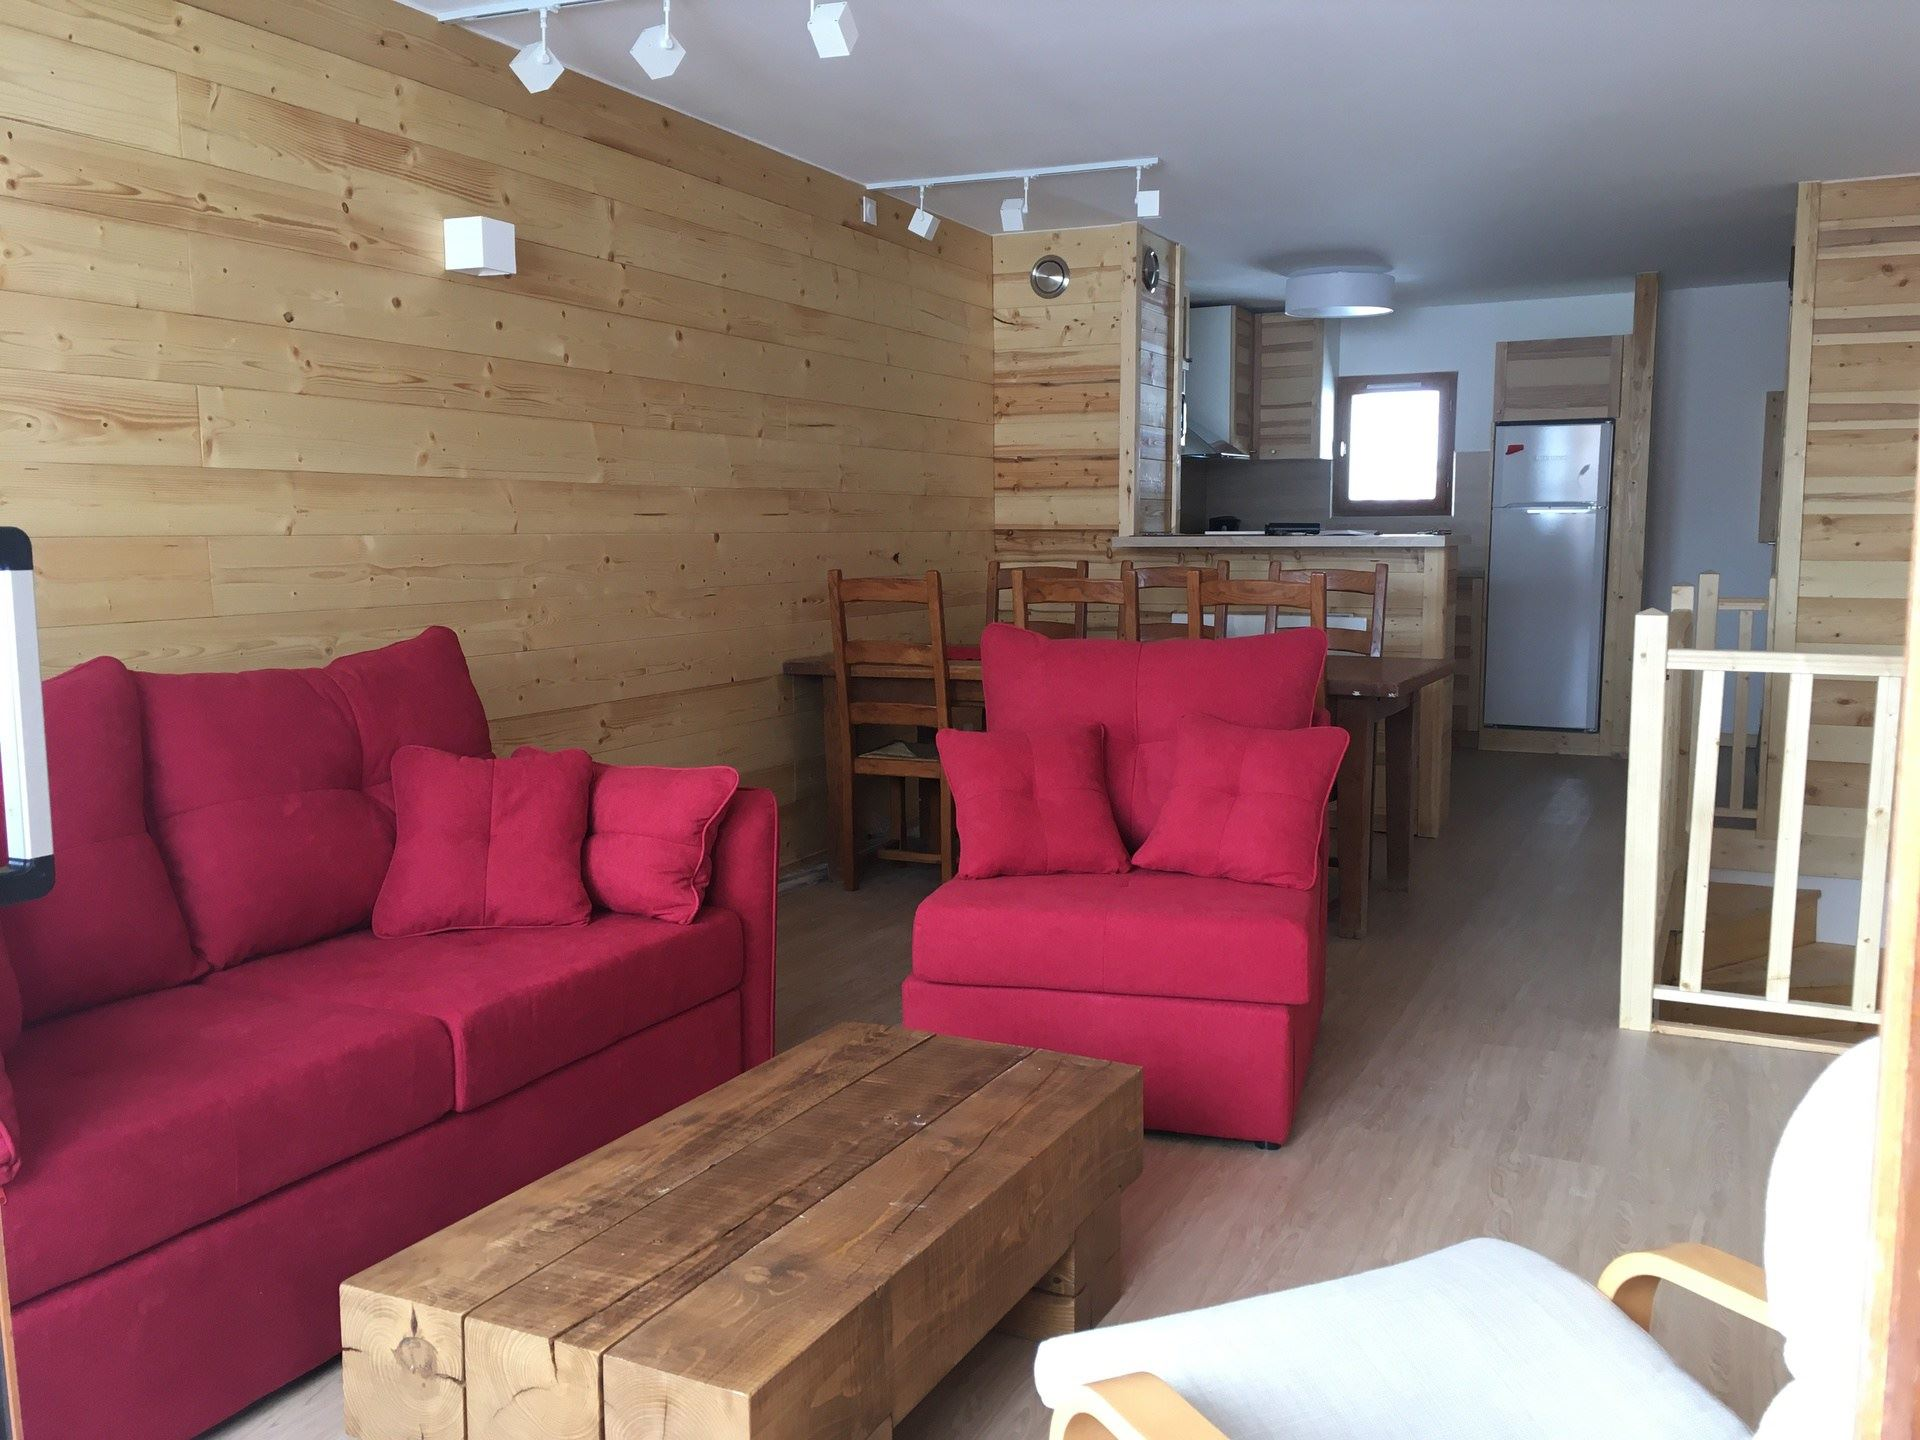 3 Rooms 4 Pers ski-in ski-out / CHARMETTE 1